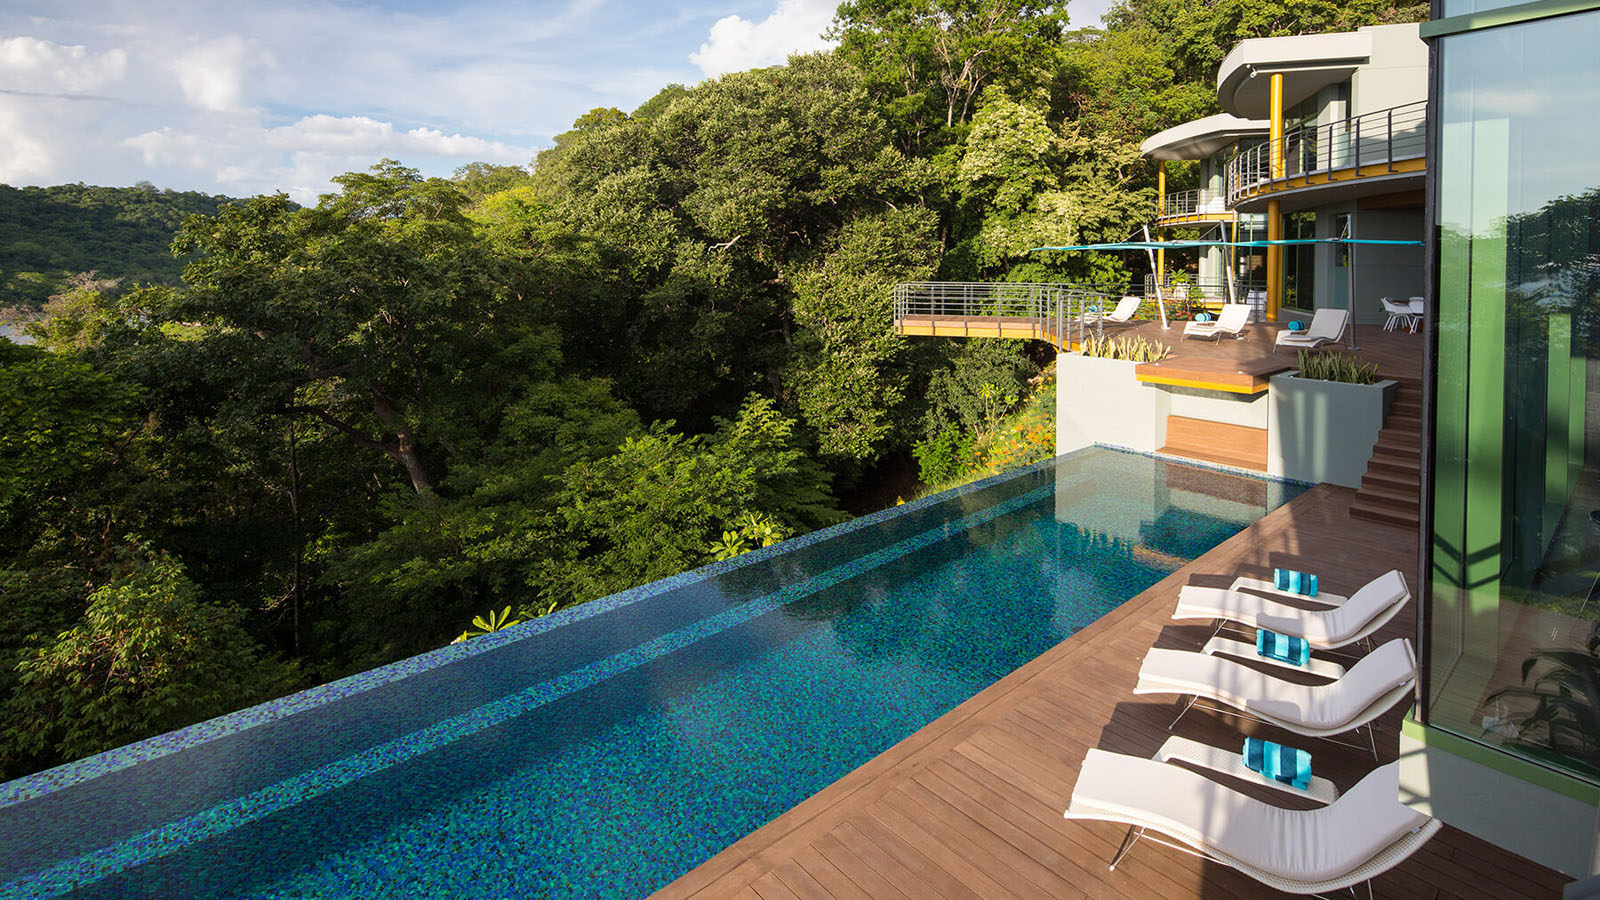 Tropical Modern Luxury Home In The Jungle Idesignarch